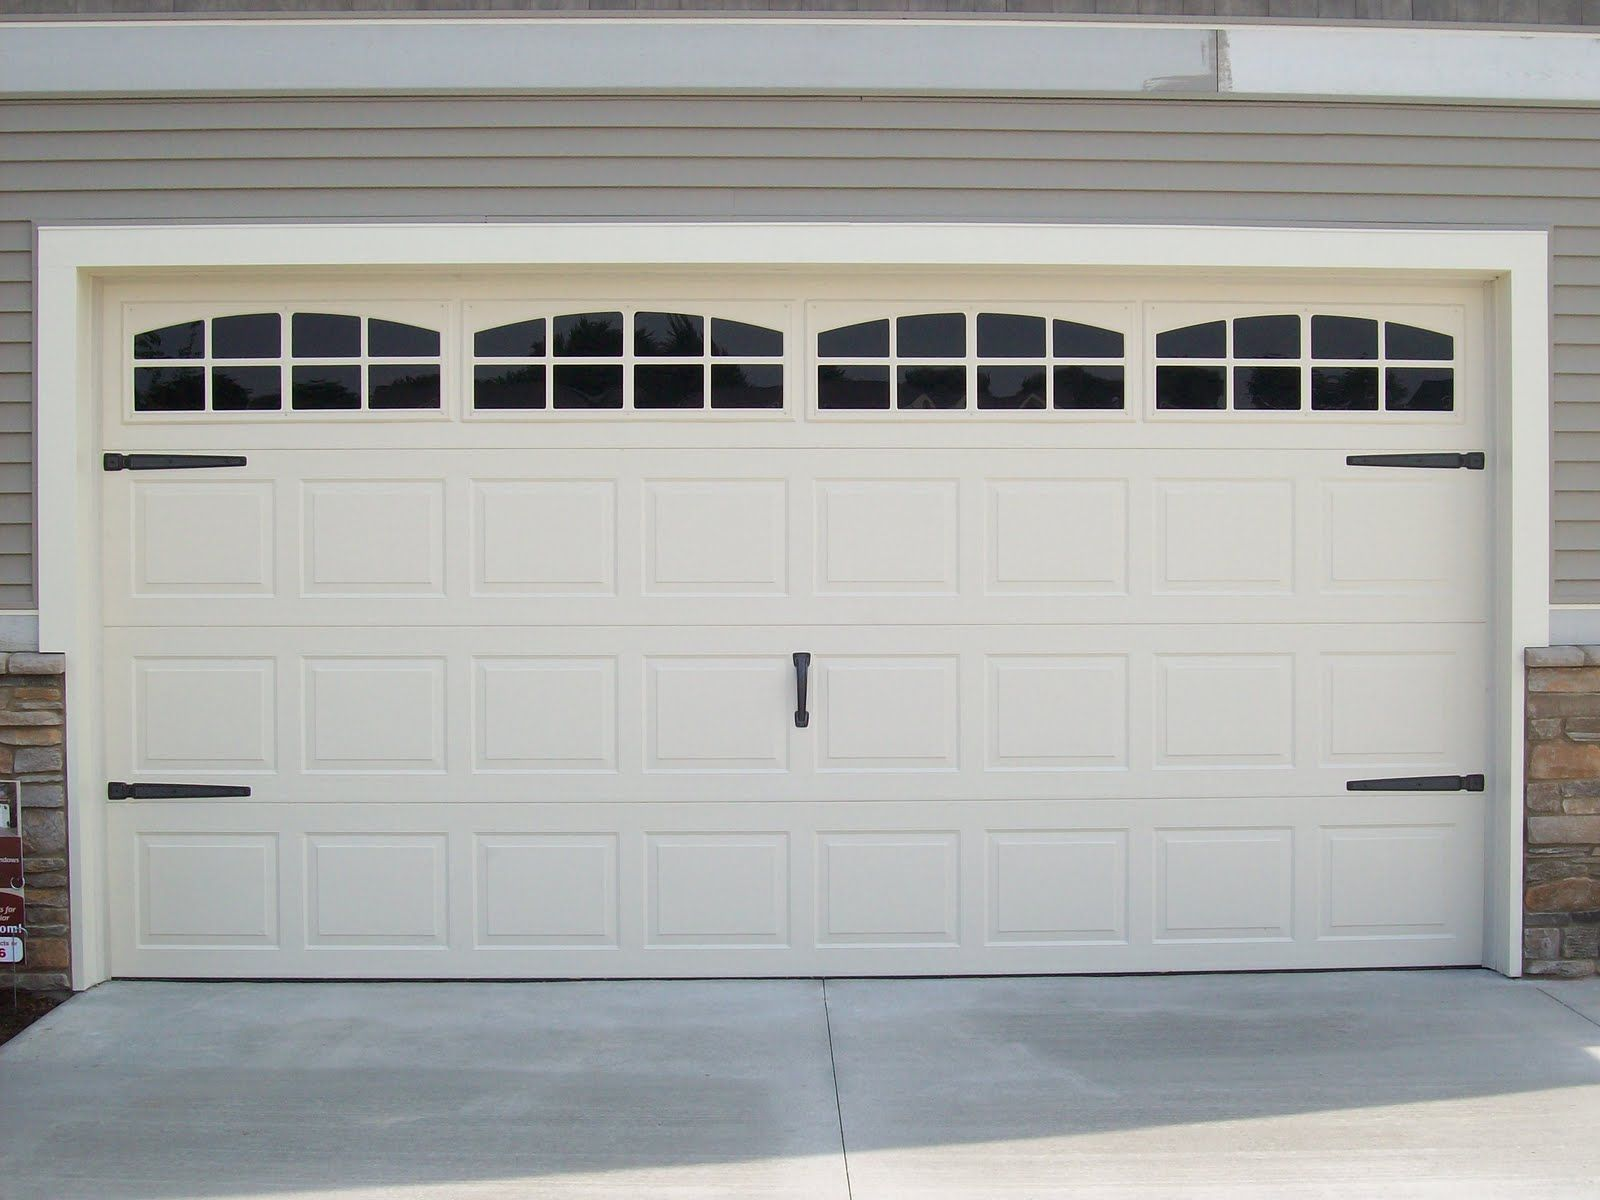 Faux Garage Door Hardware Faux Fake Garage Door Windows Custom Carriage House Window